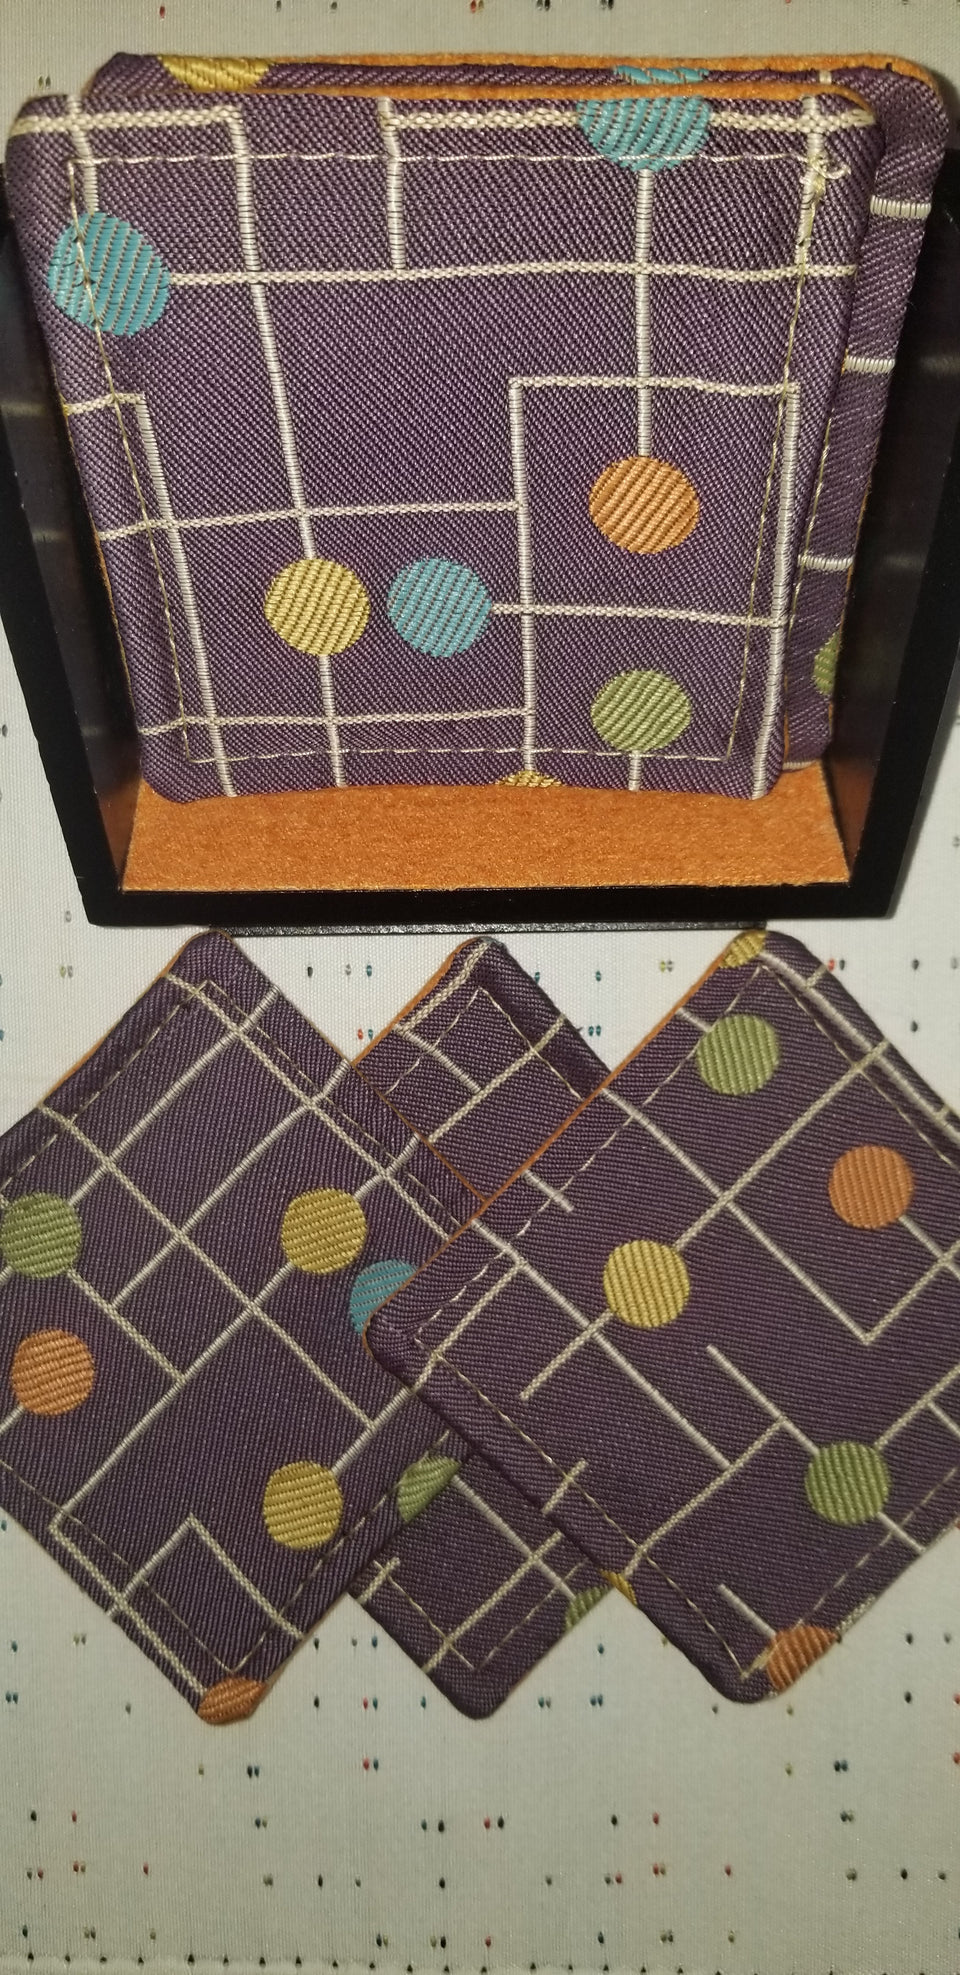 Carmine purple and orange coasters with Carla pedestal coaster holder set